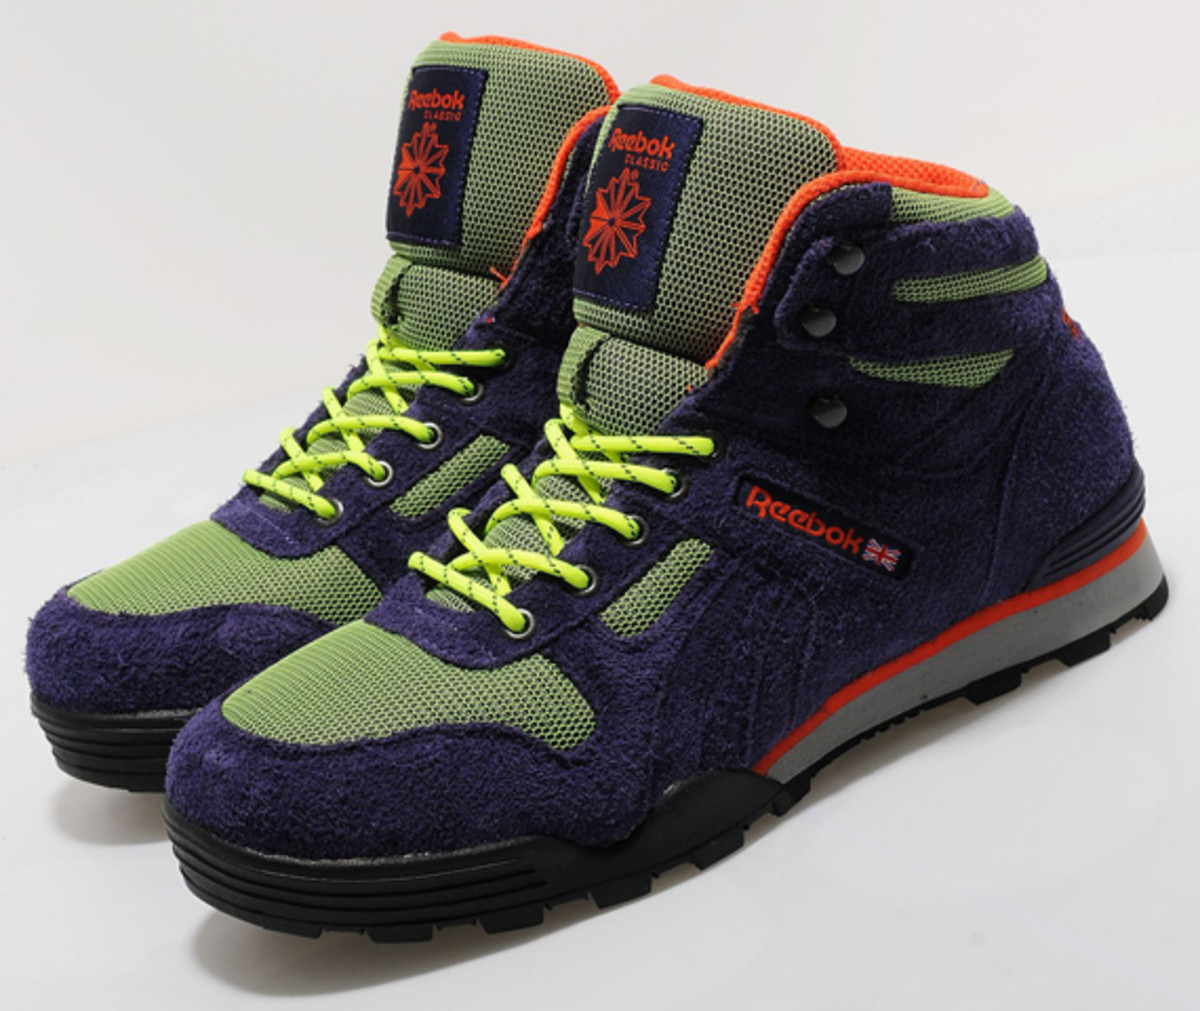 reebok-night-sky-mid-gore-tex-thinsulate-06